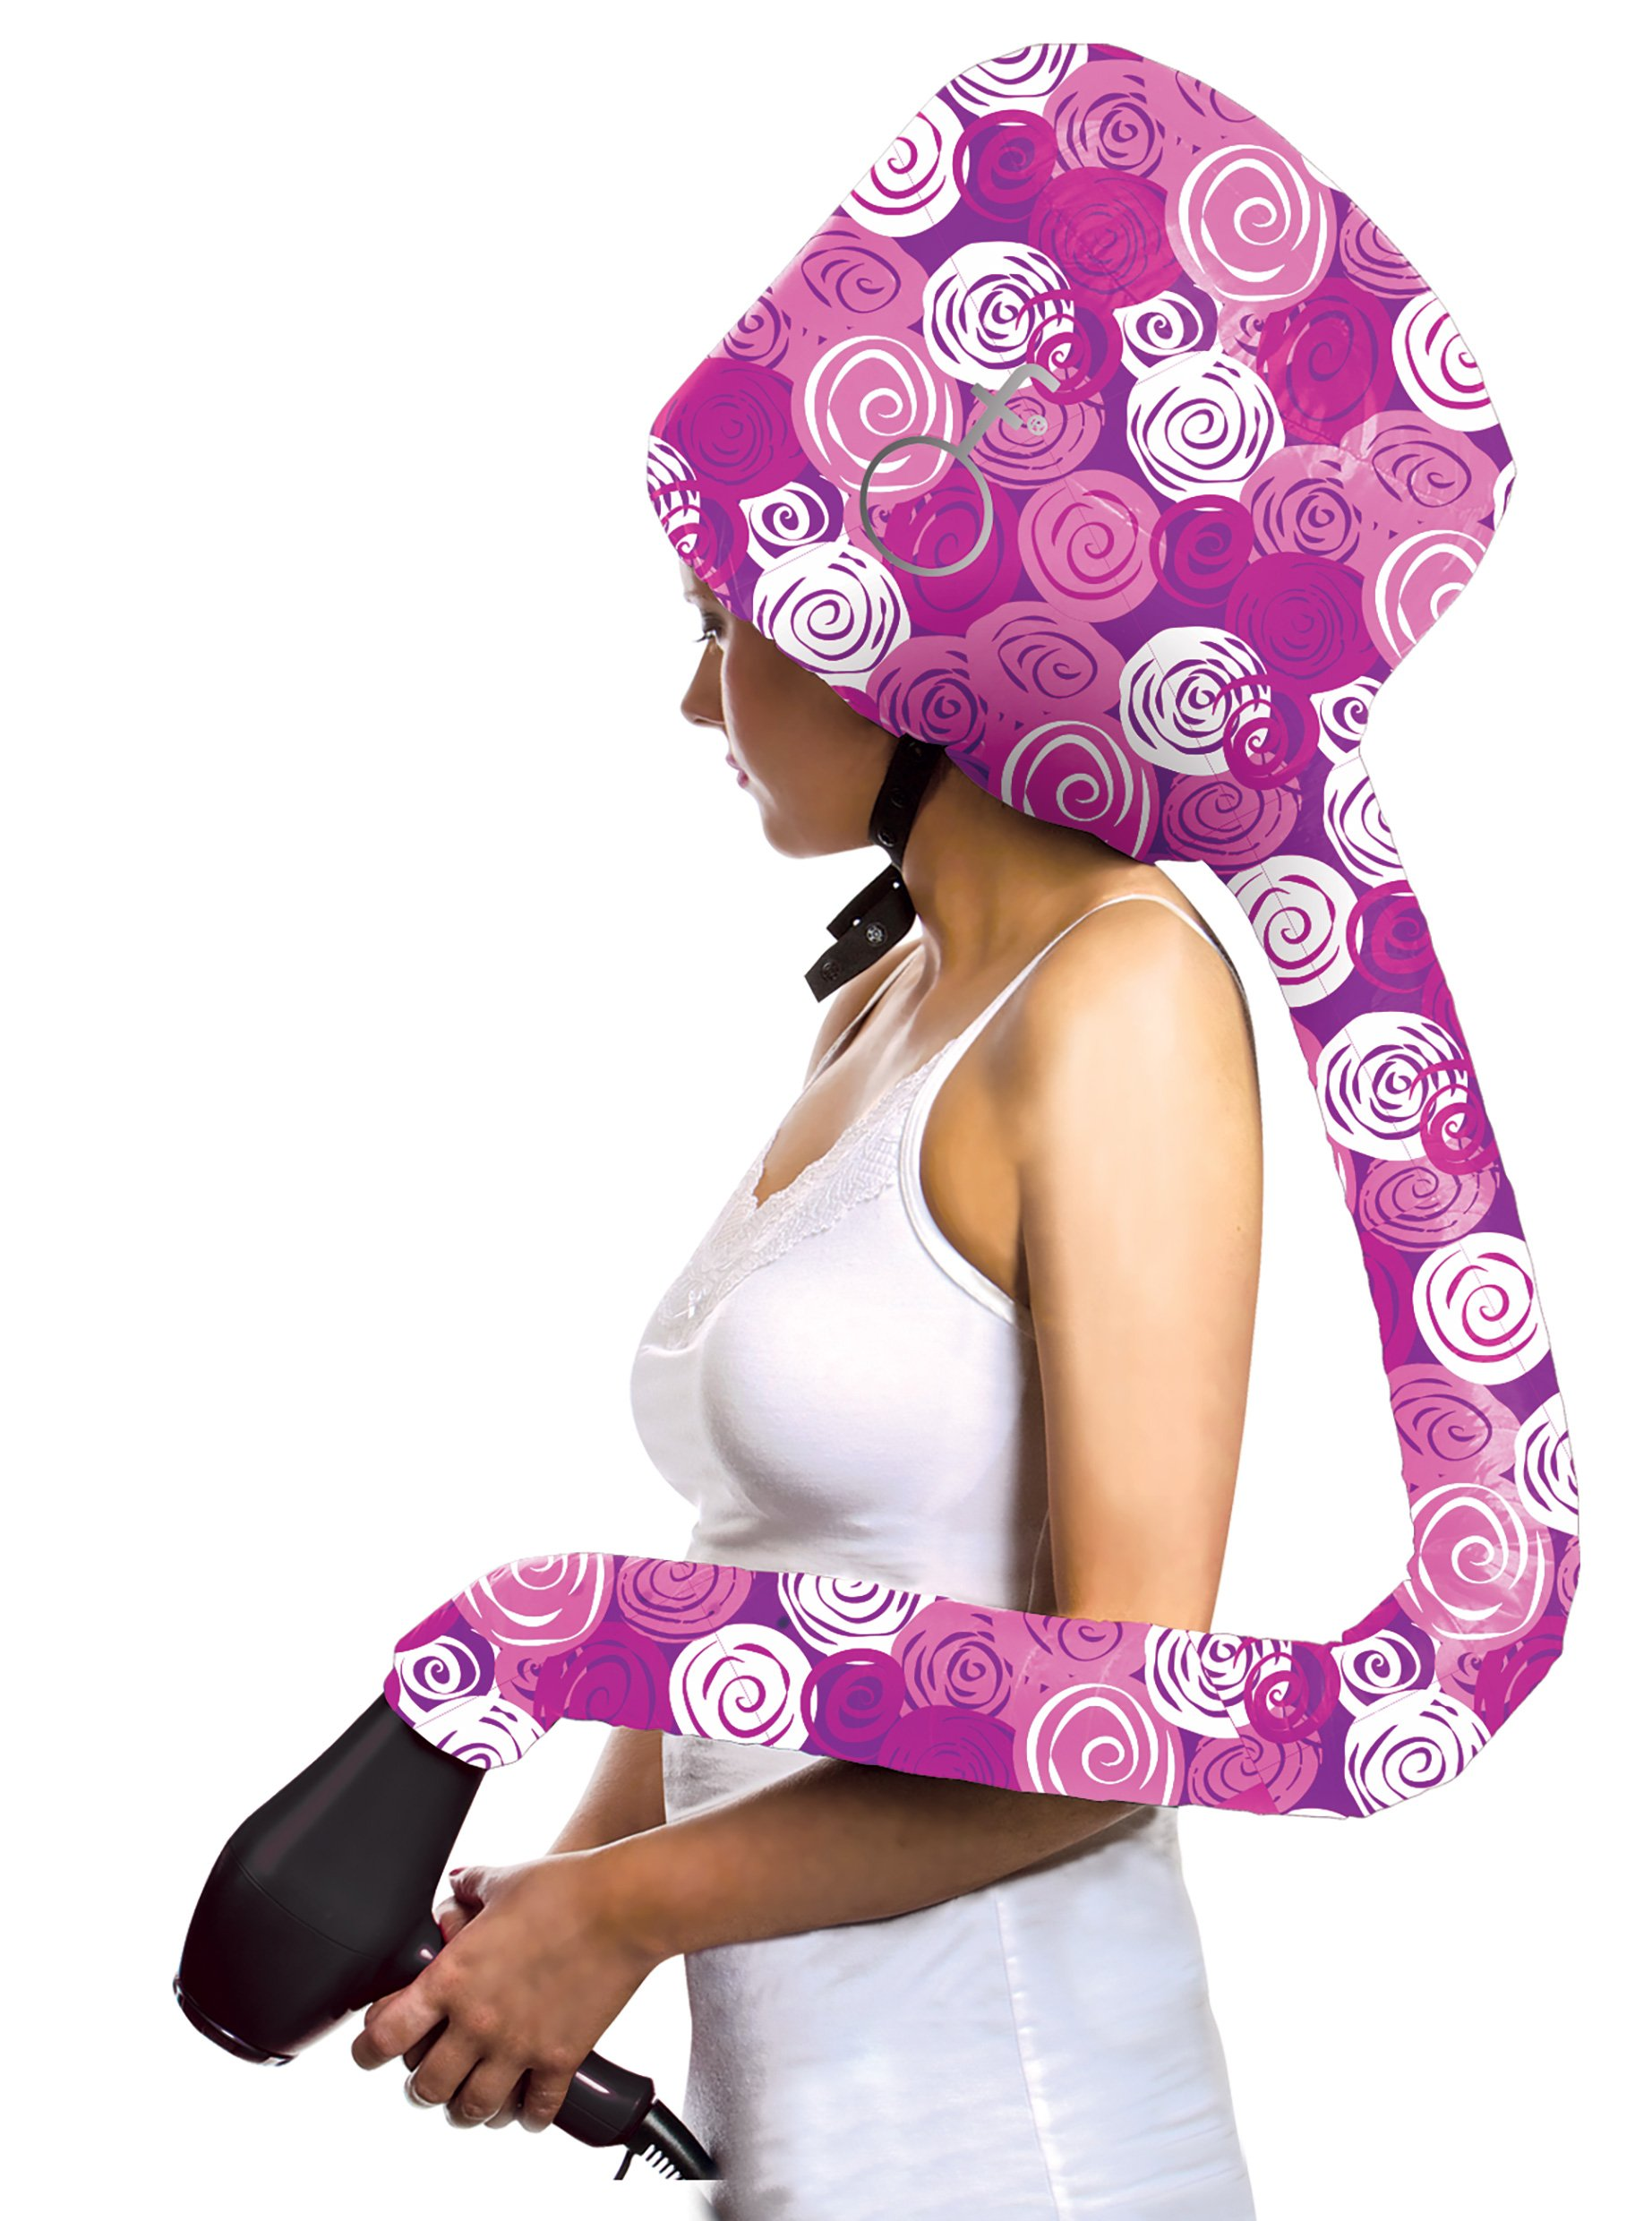 Bonnet Hair Dryer Attachment Hair Flair Deluxe Softhood (Multi-colored Pinks)